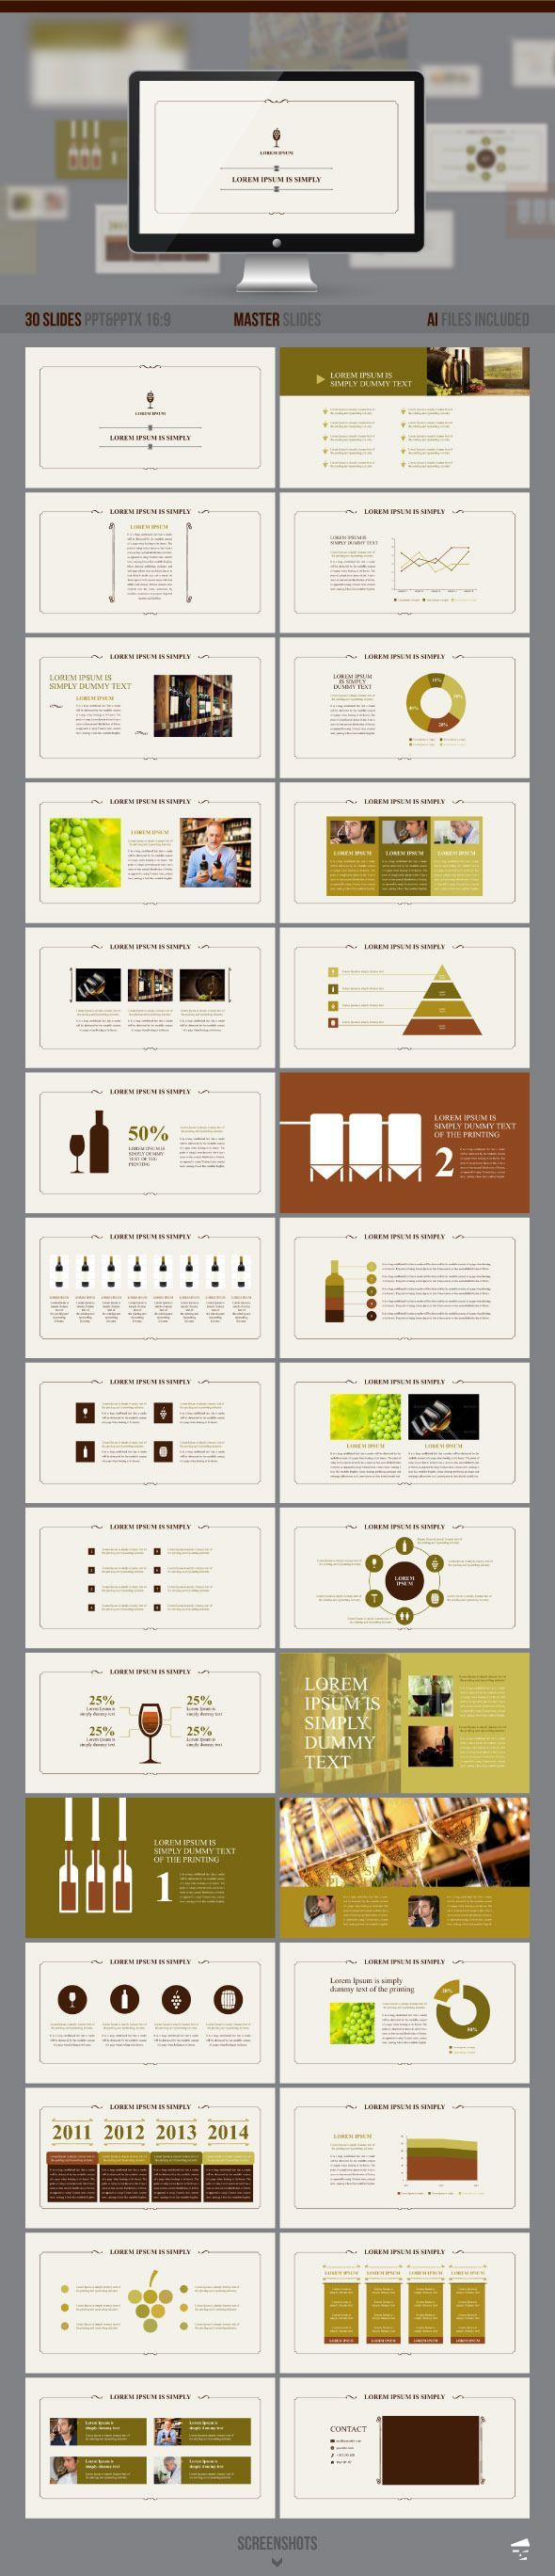 PowerPoint Template #powerpoint #powerpointtemplate #presentation Download: http://graphicriver.net/item/presentation-of-wine/8791818?ref=ksioks: